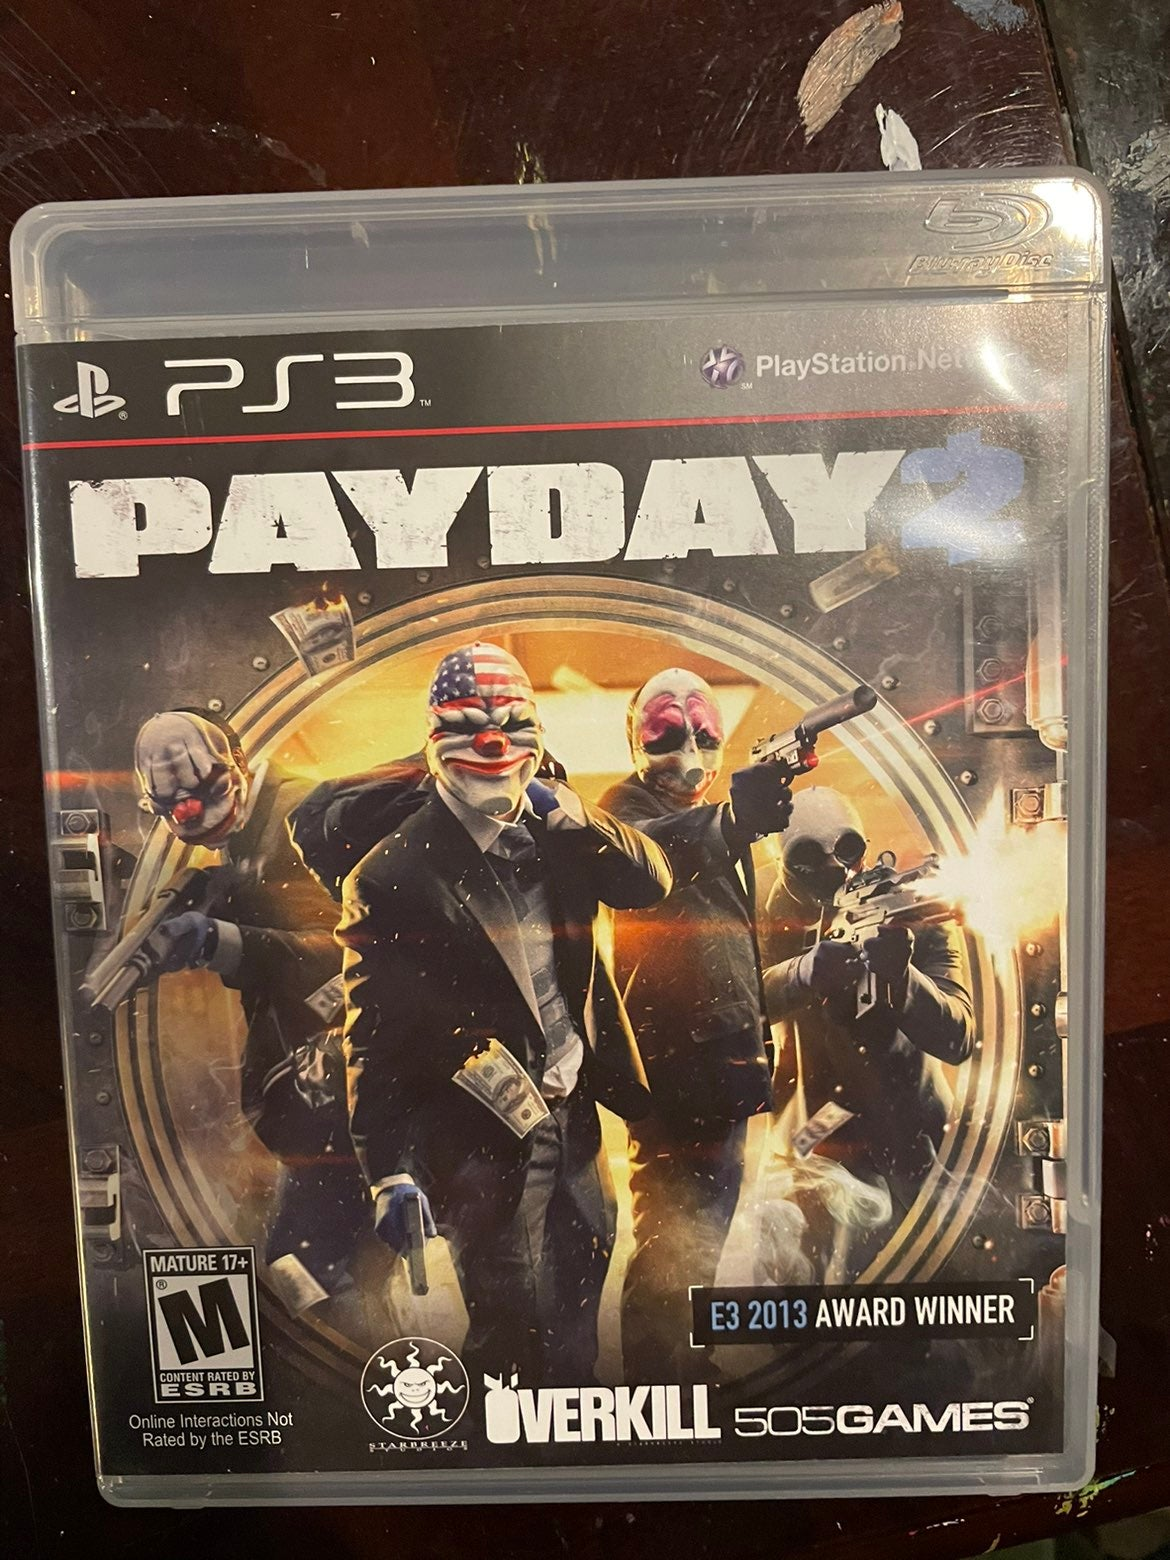 Payday 2 on Playstation 3